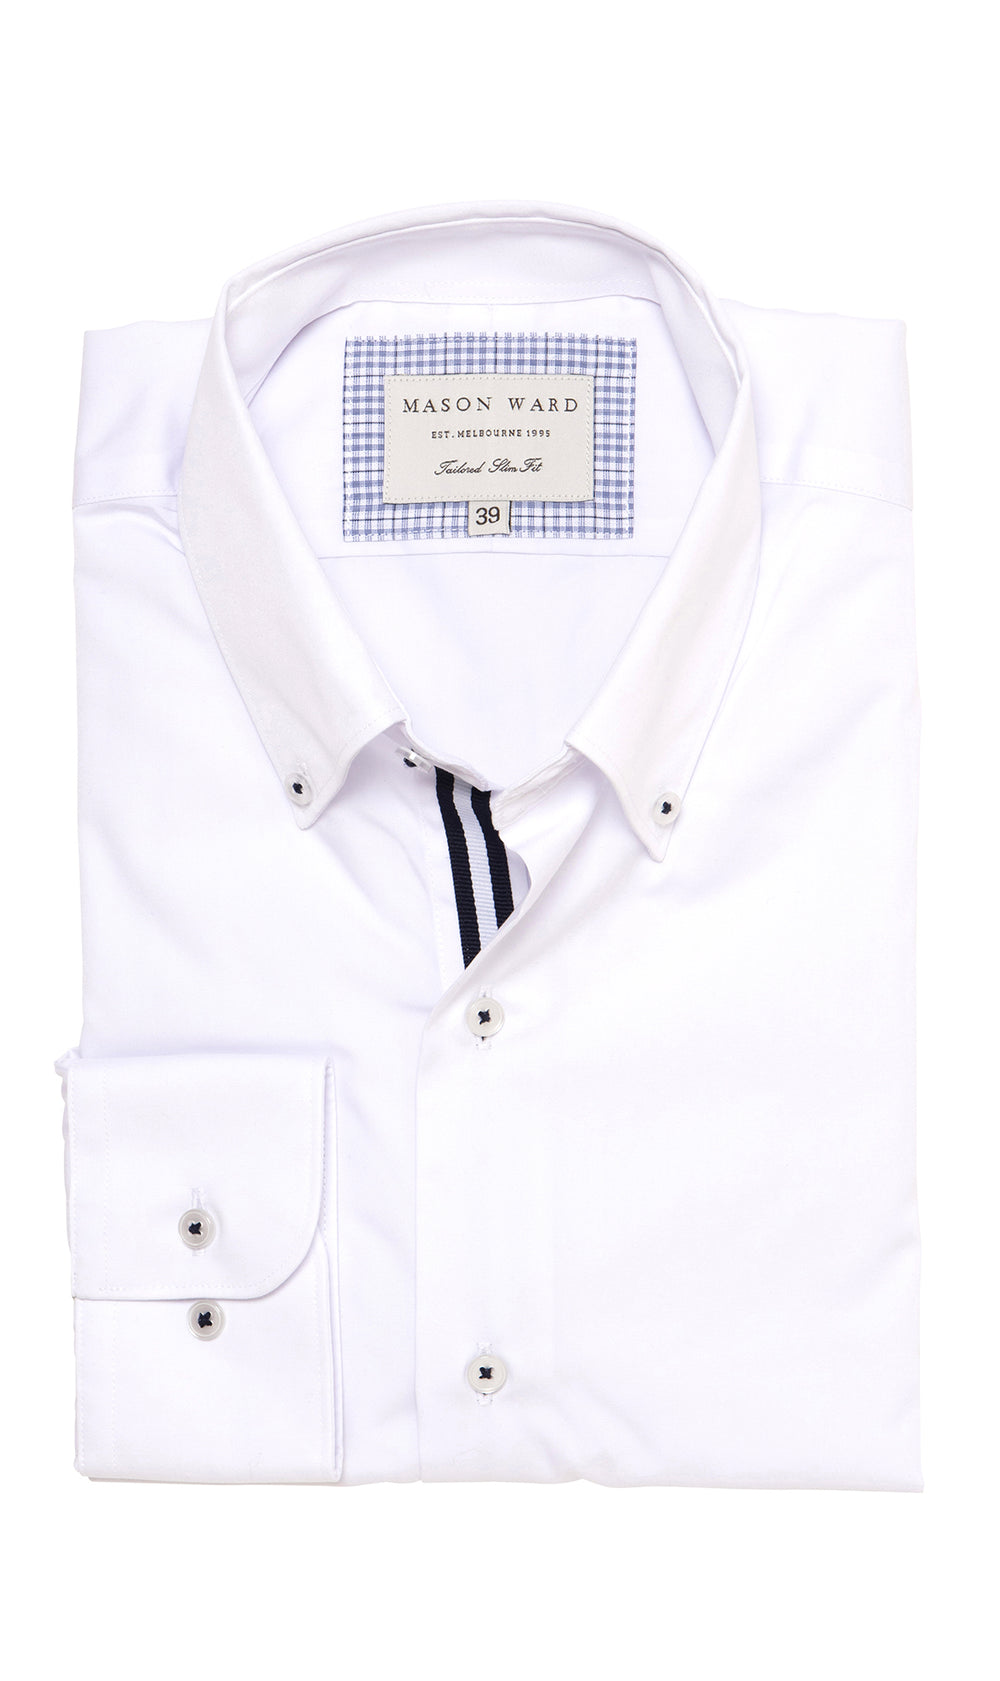 Mason Ward Berlin White Button Down Slim Fit/ Regular Cuff Shirt White